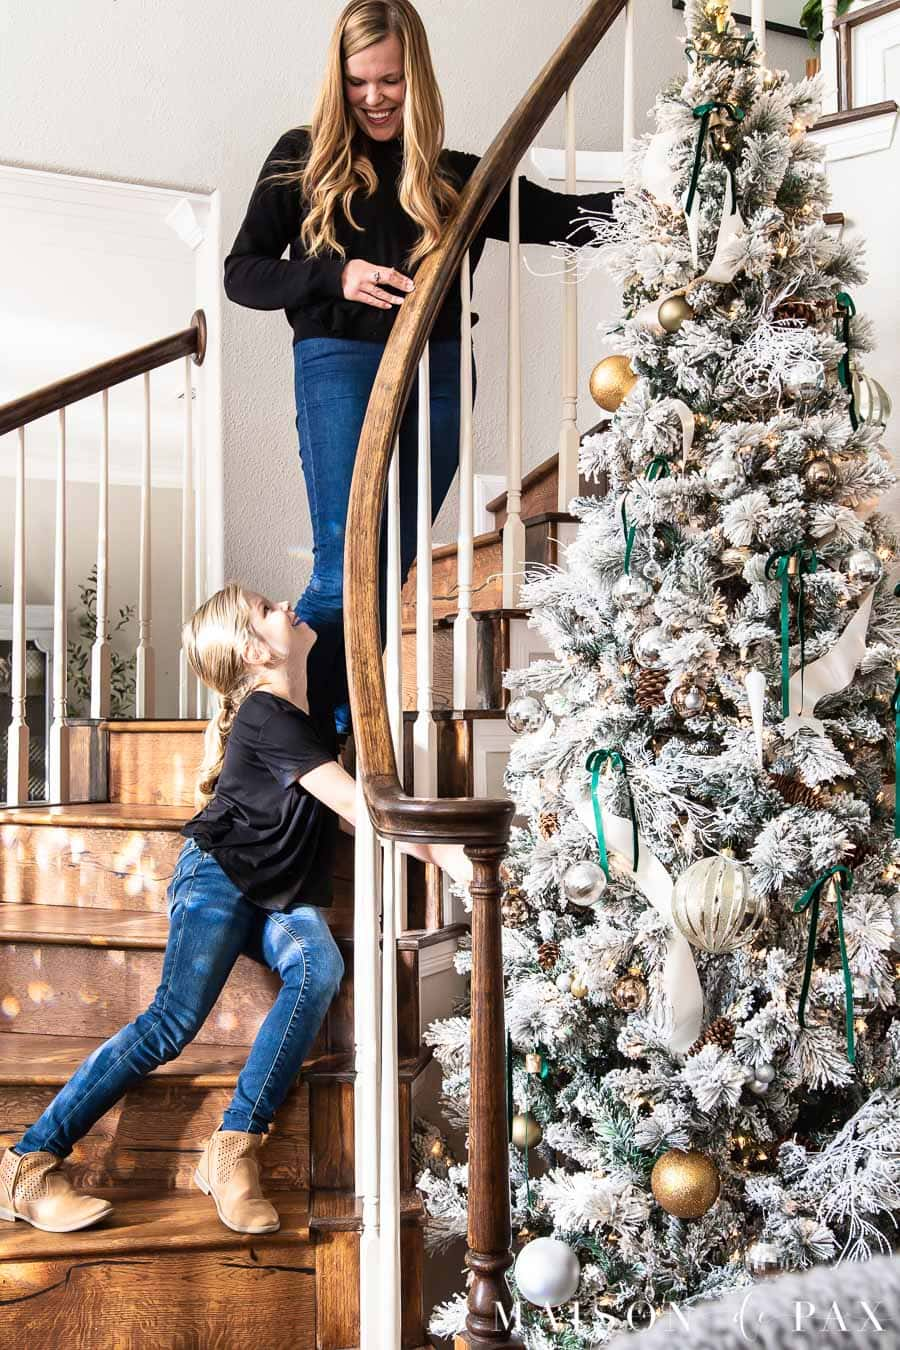 mother daughter decorating tall flocked Christmas tree | Maison de Pax